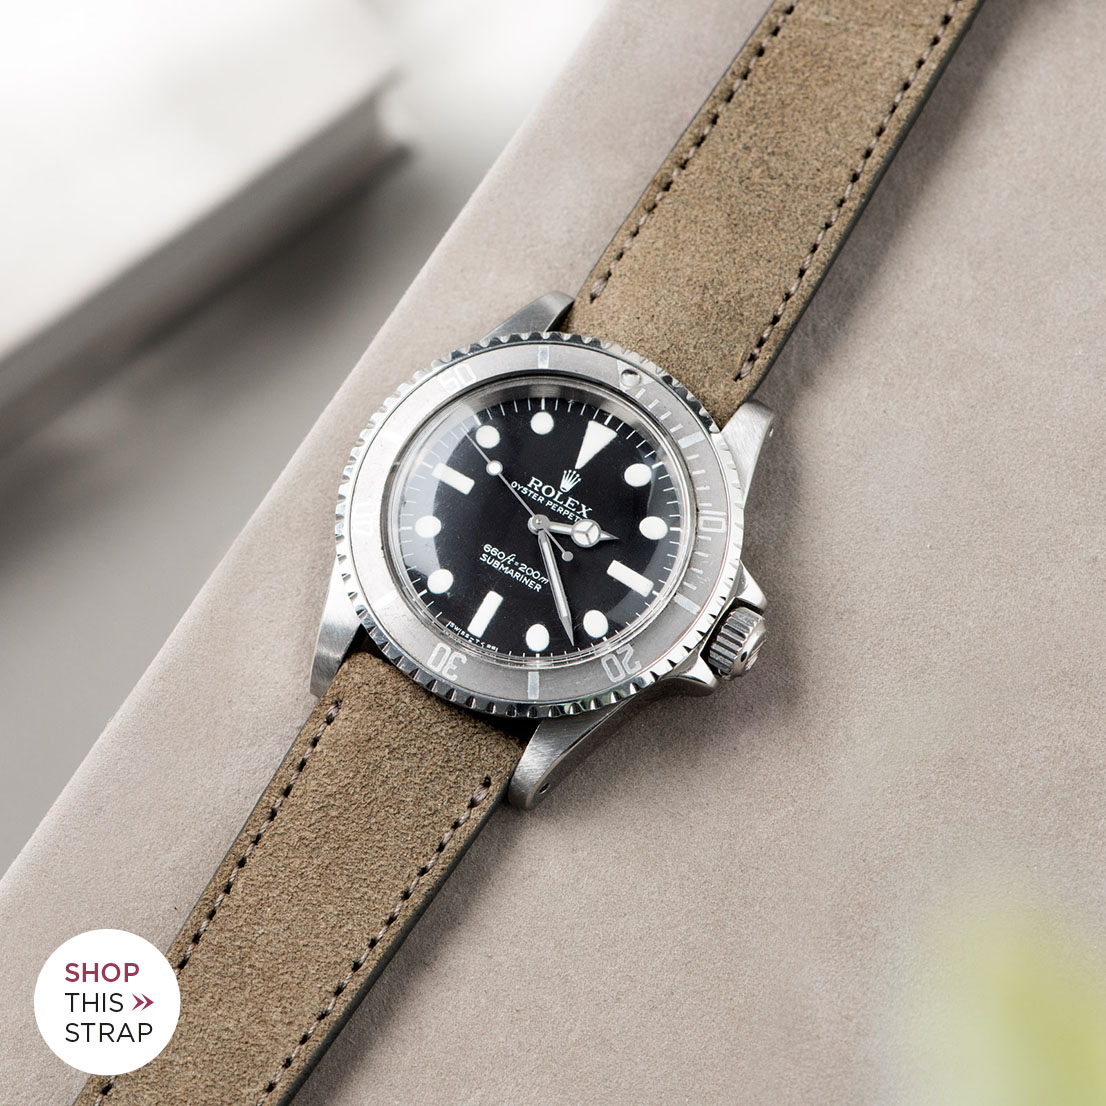 Bulang and Sons_Strap Guide_Rolex Submariner 5513 Faded_DARK GREY RUGGED LEATHER WATCH STRAP